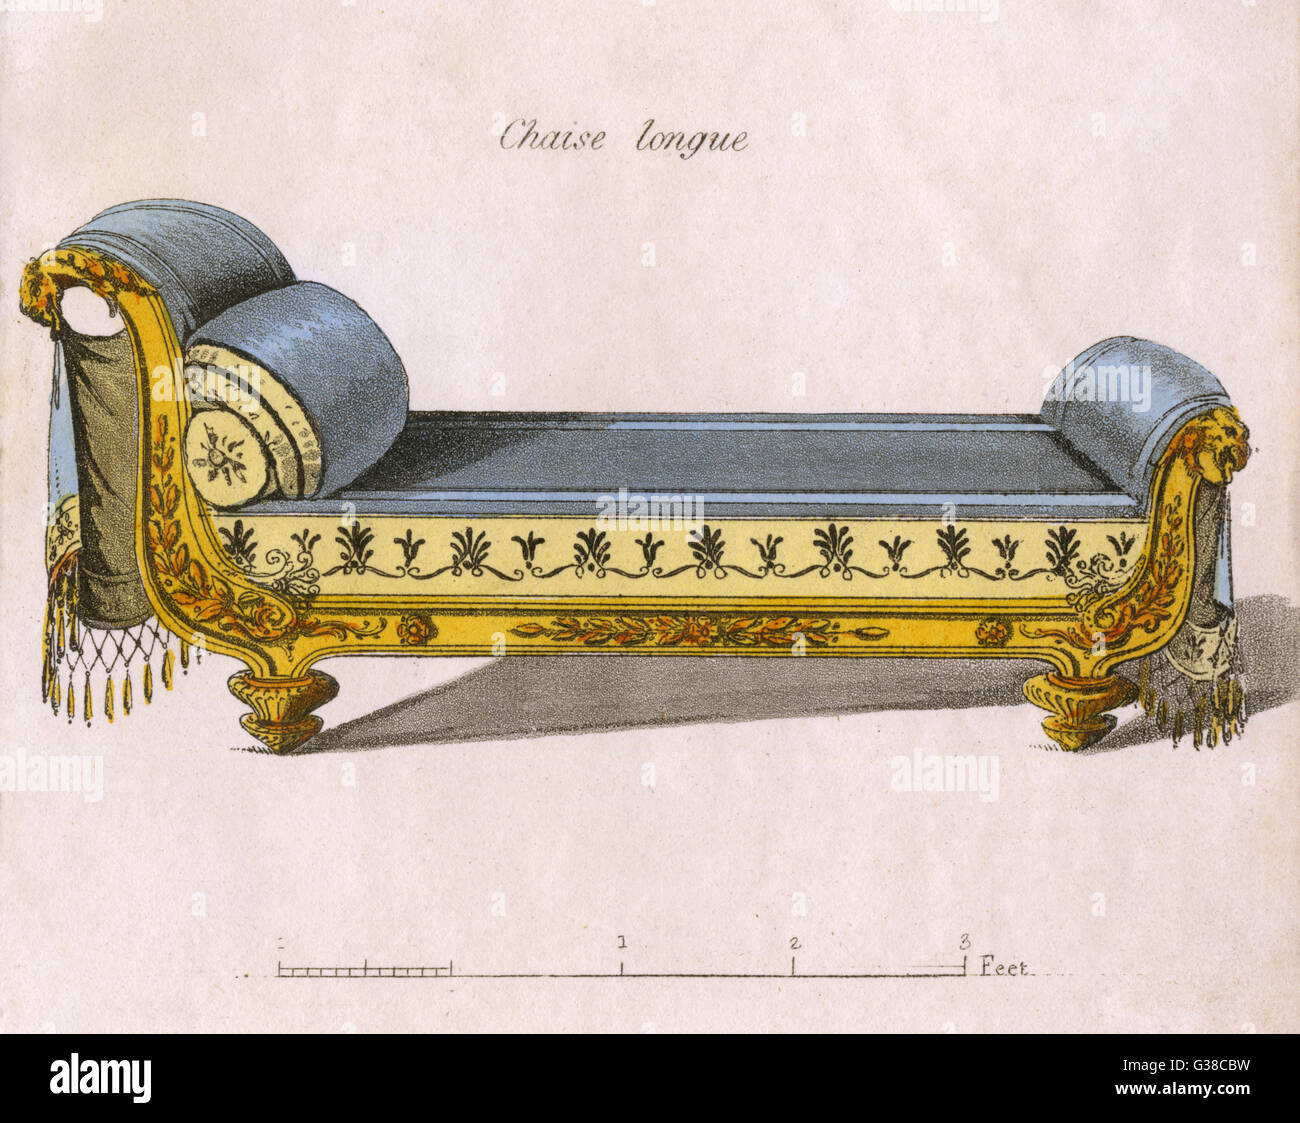 A Chaise Longue in the  Classical style         Date: 1808 - Stock Image